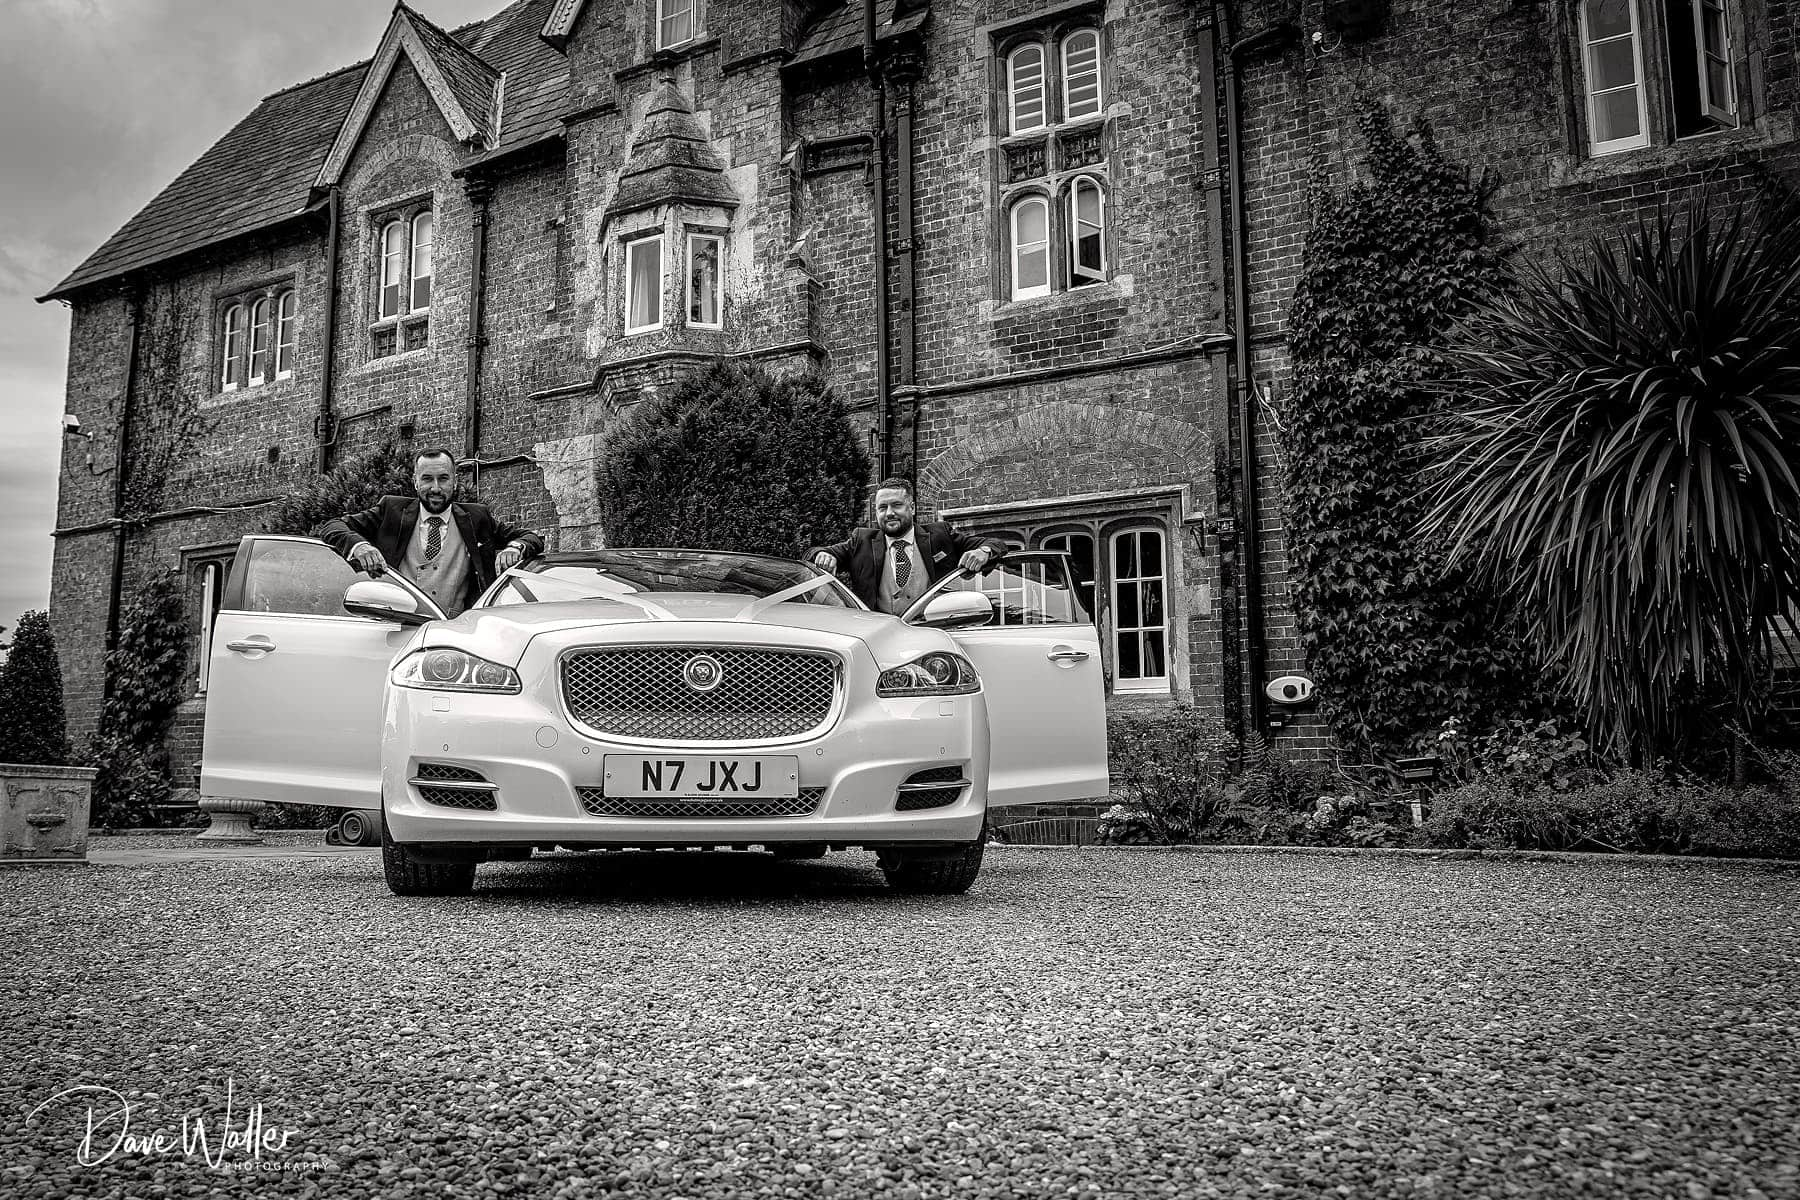 71-parsonage-hotel-york-wedding-photographer-|-york-wedding-photography- .jpg